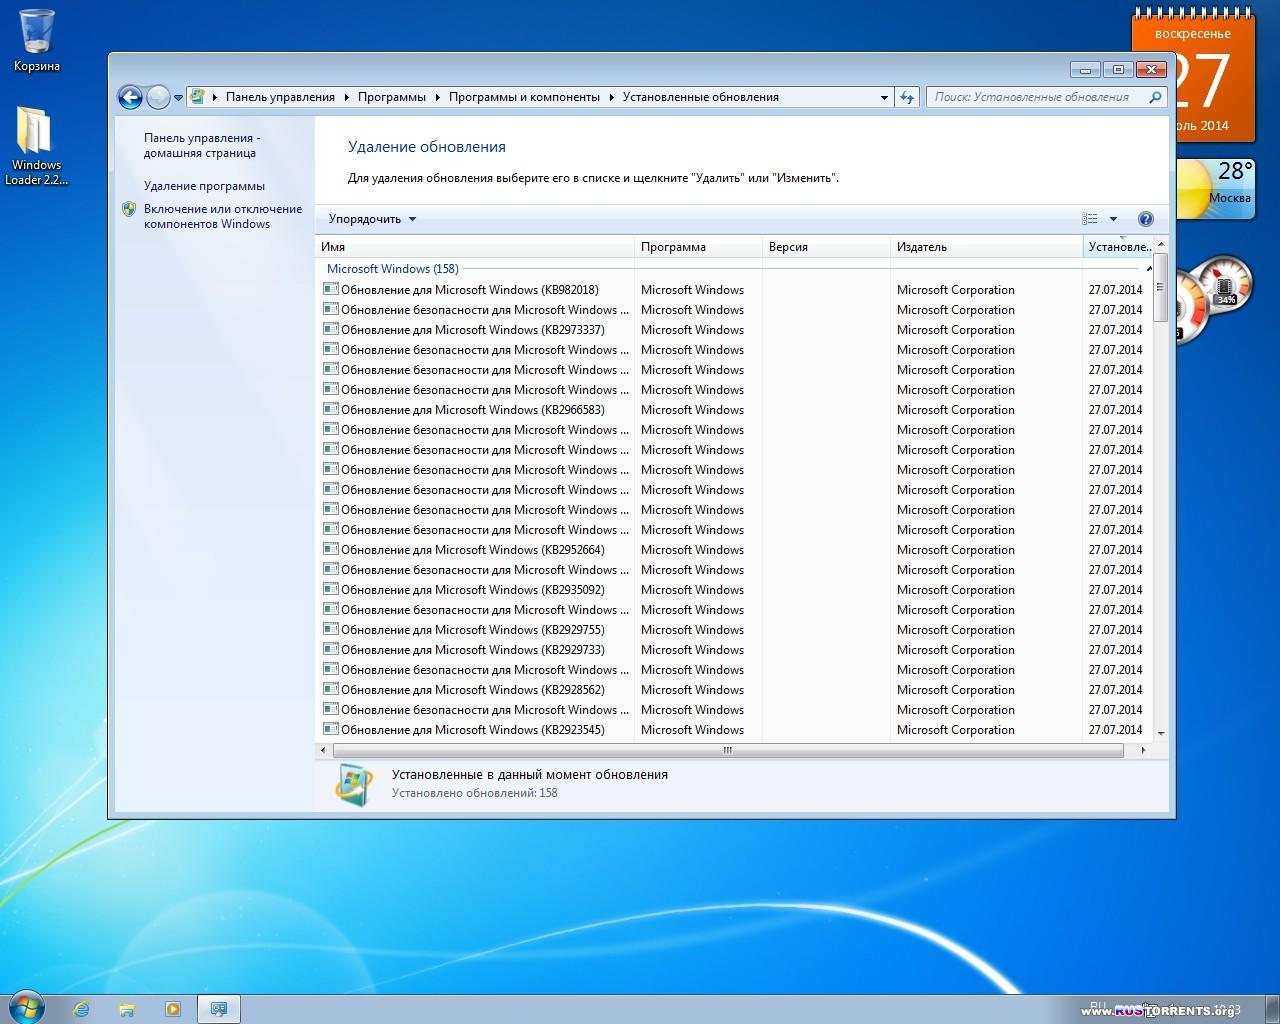 Windows 7 SP1 x64 AIO 4in1 Updates for July v.19.07 by DDGroup 19.07.2014 RUS